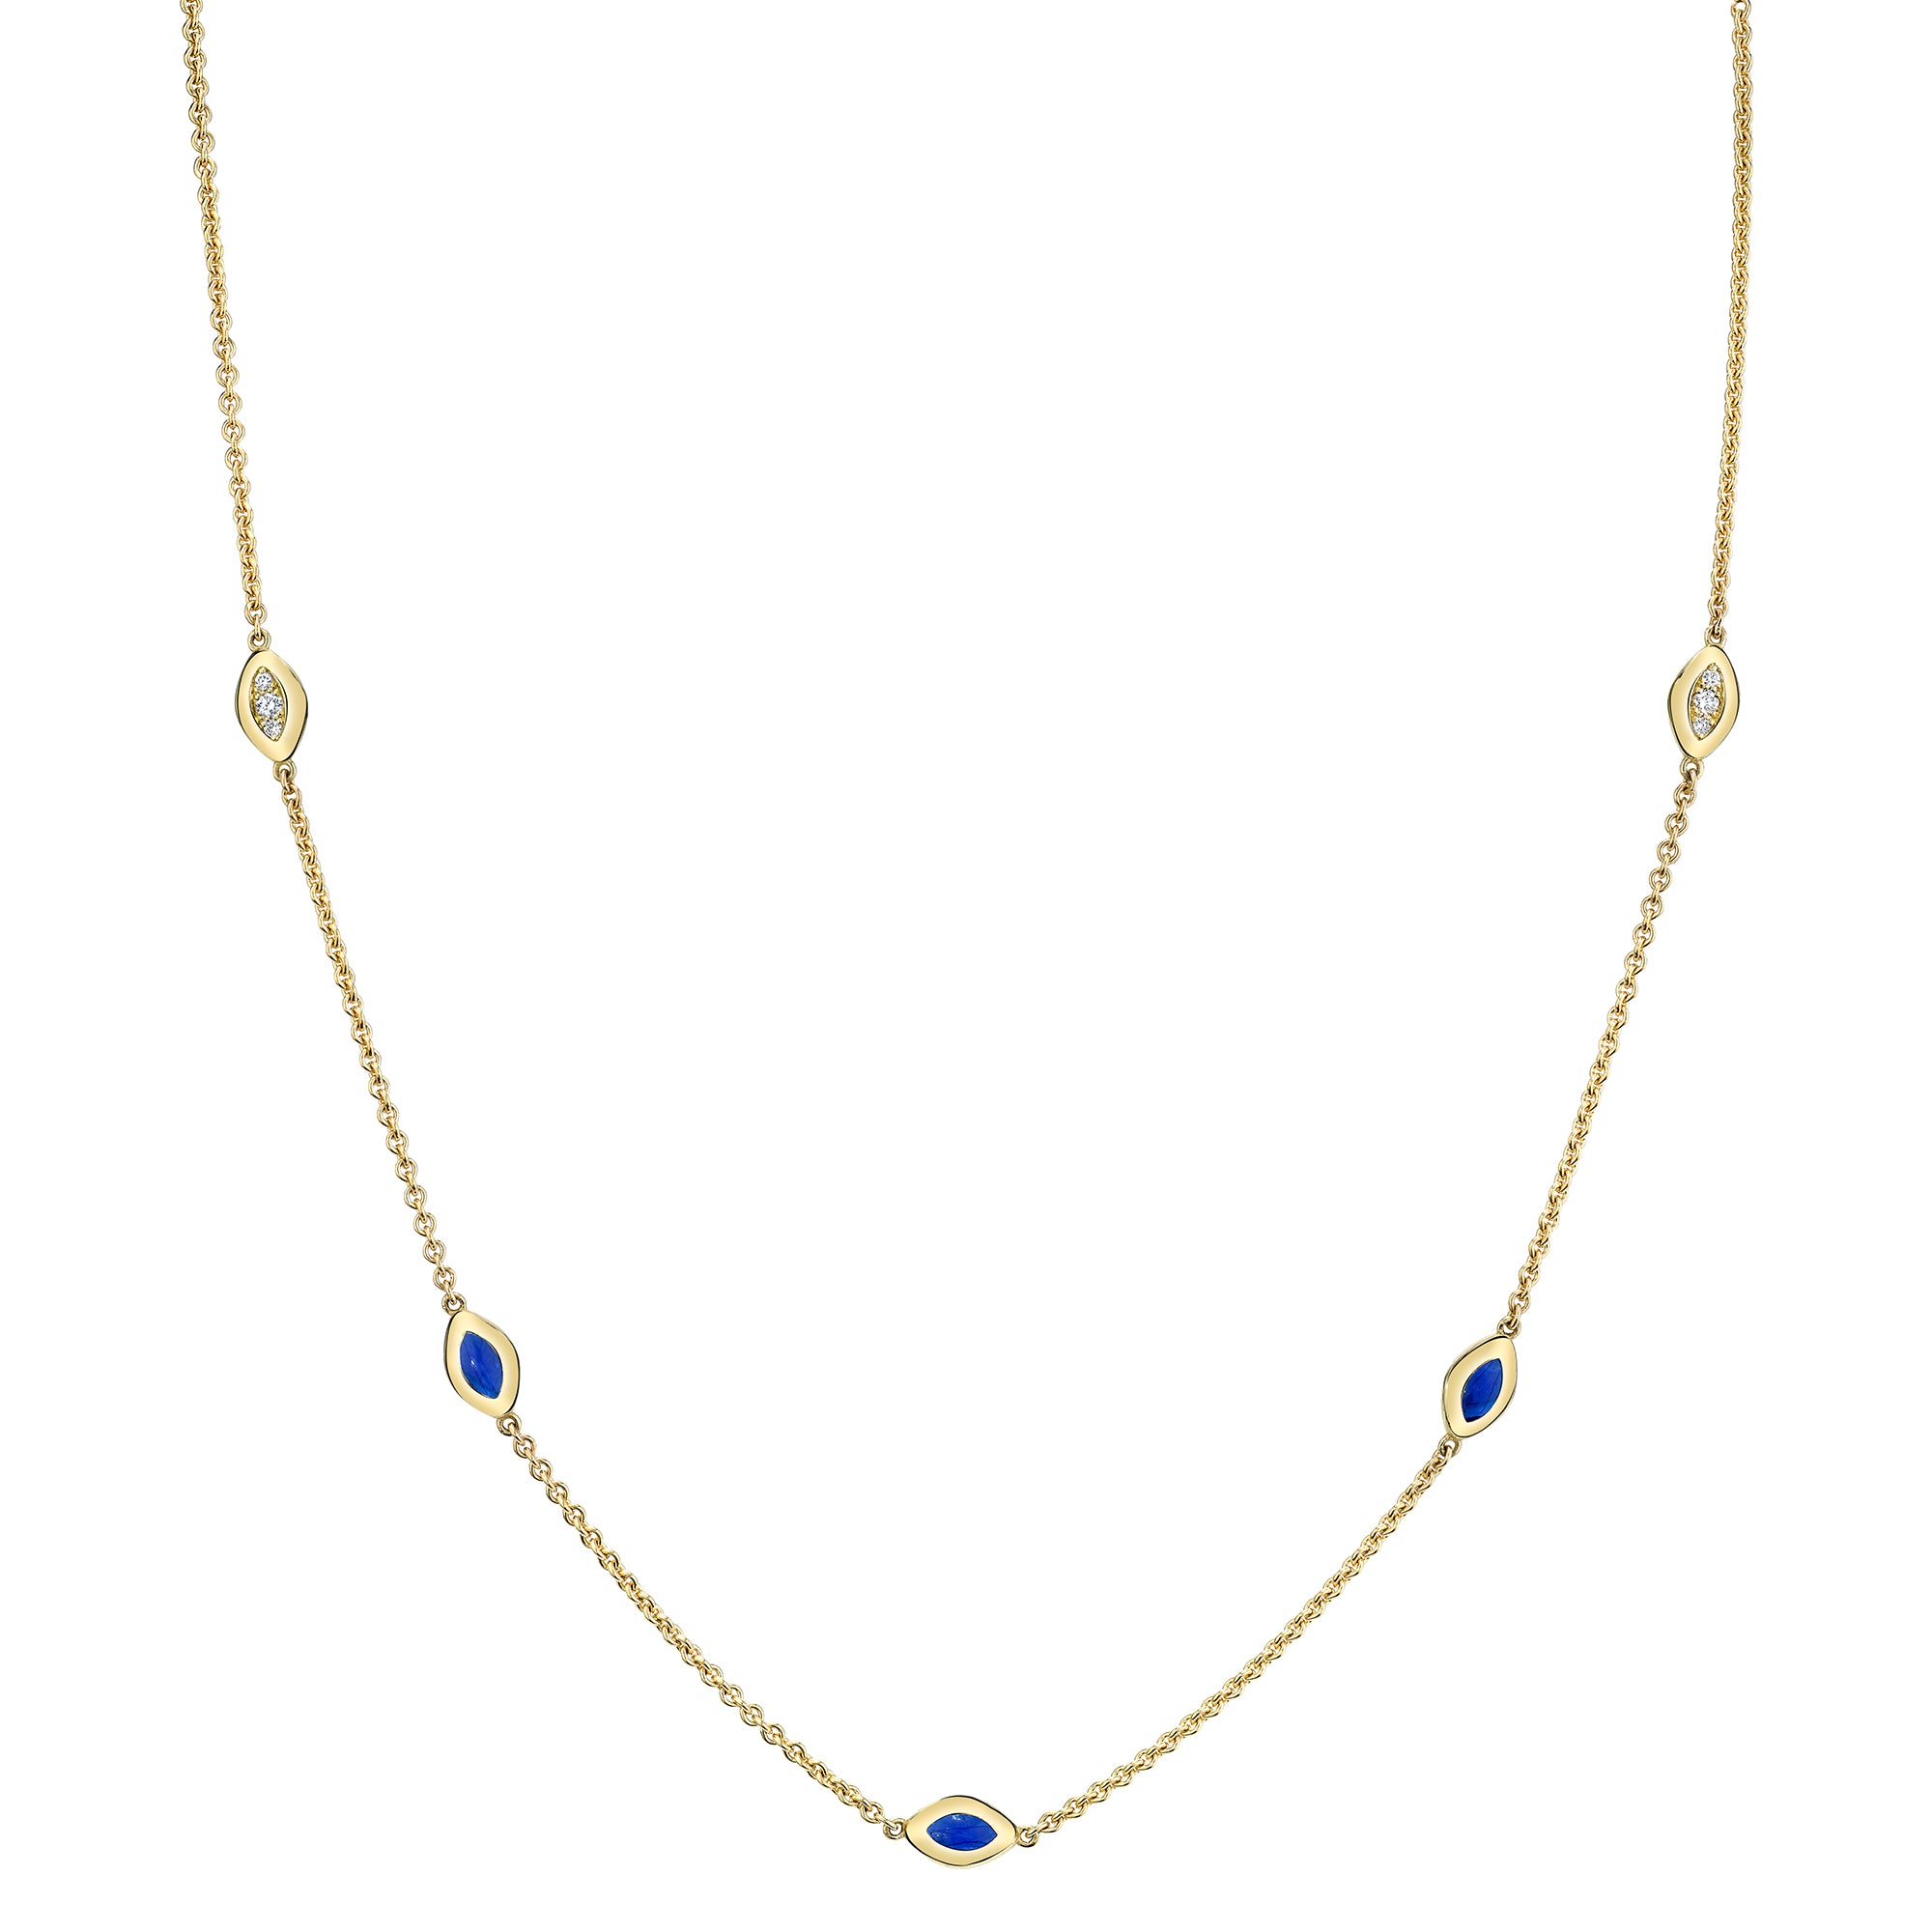 Five Link Necklace with Dia Pave and Blue Enamel - ANDY LIF Jewelry - Necklaces | Broken English Jewelry